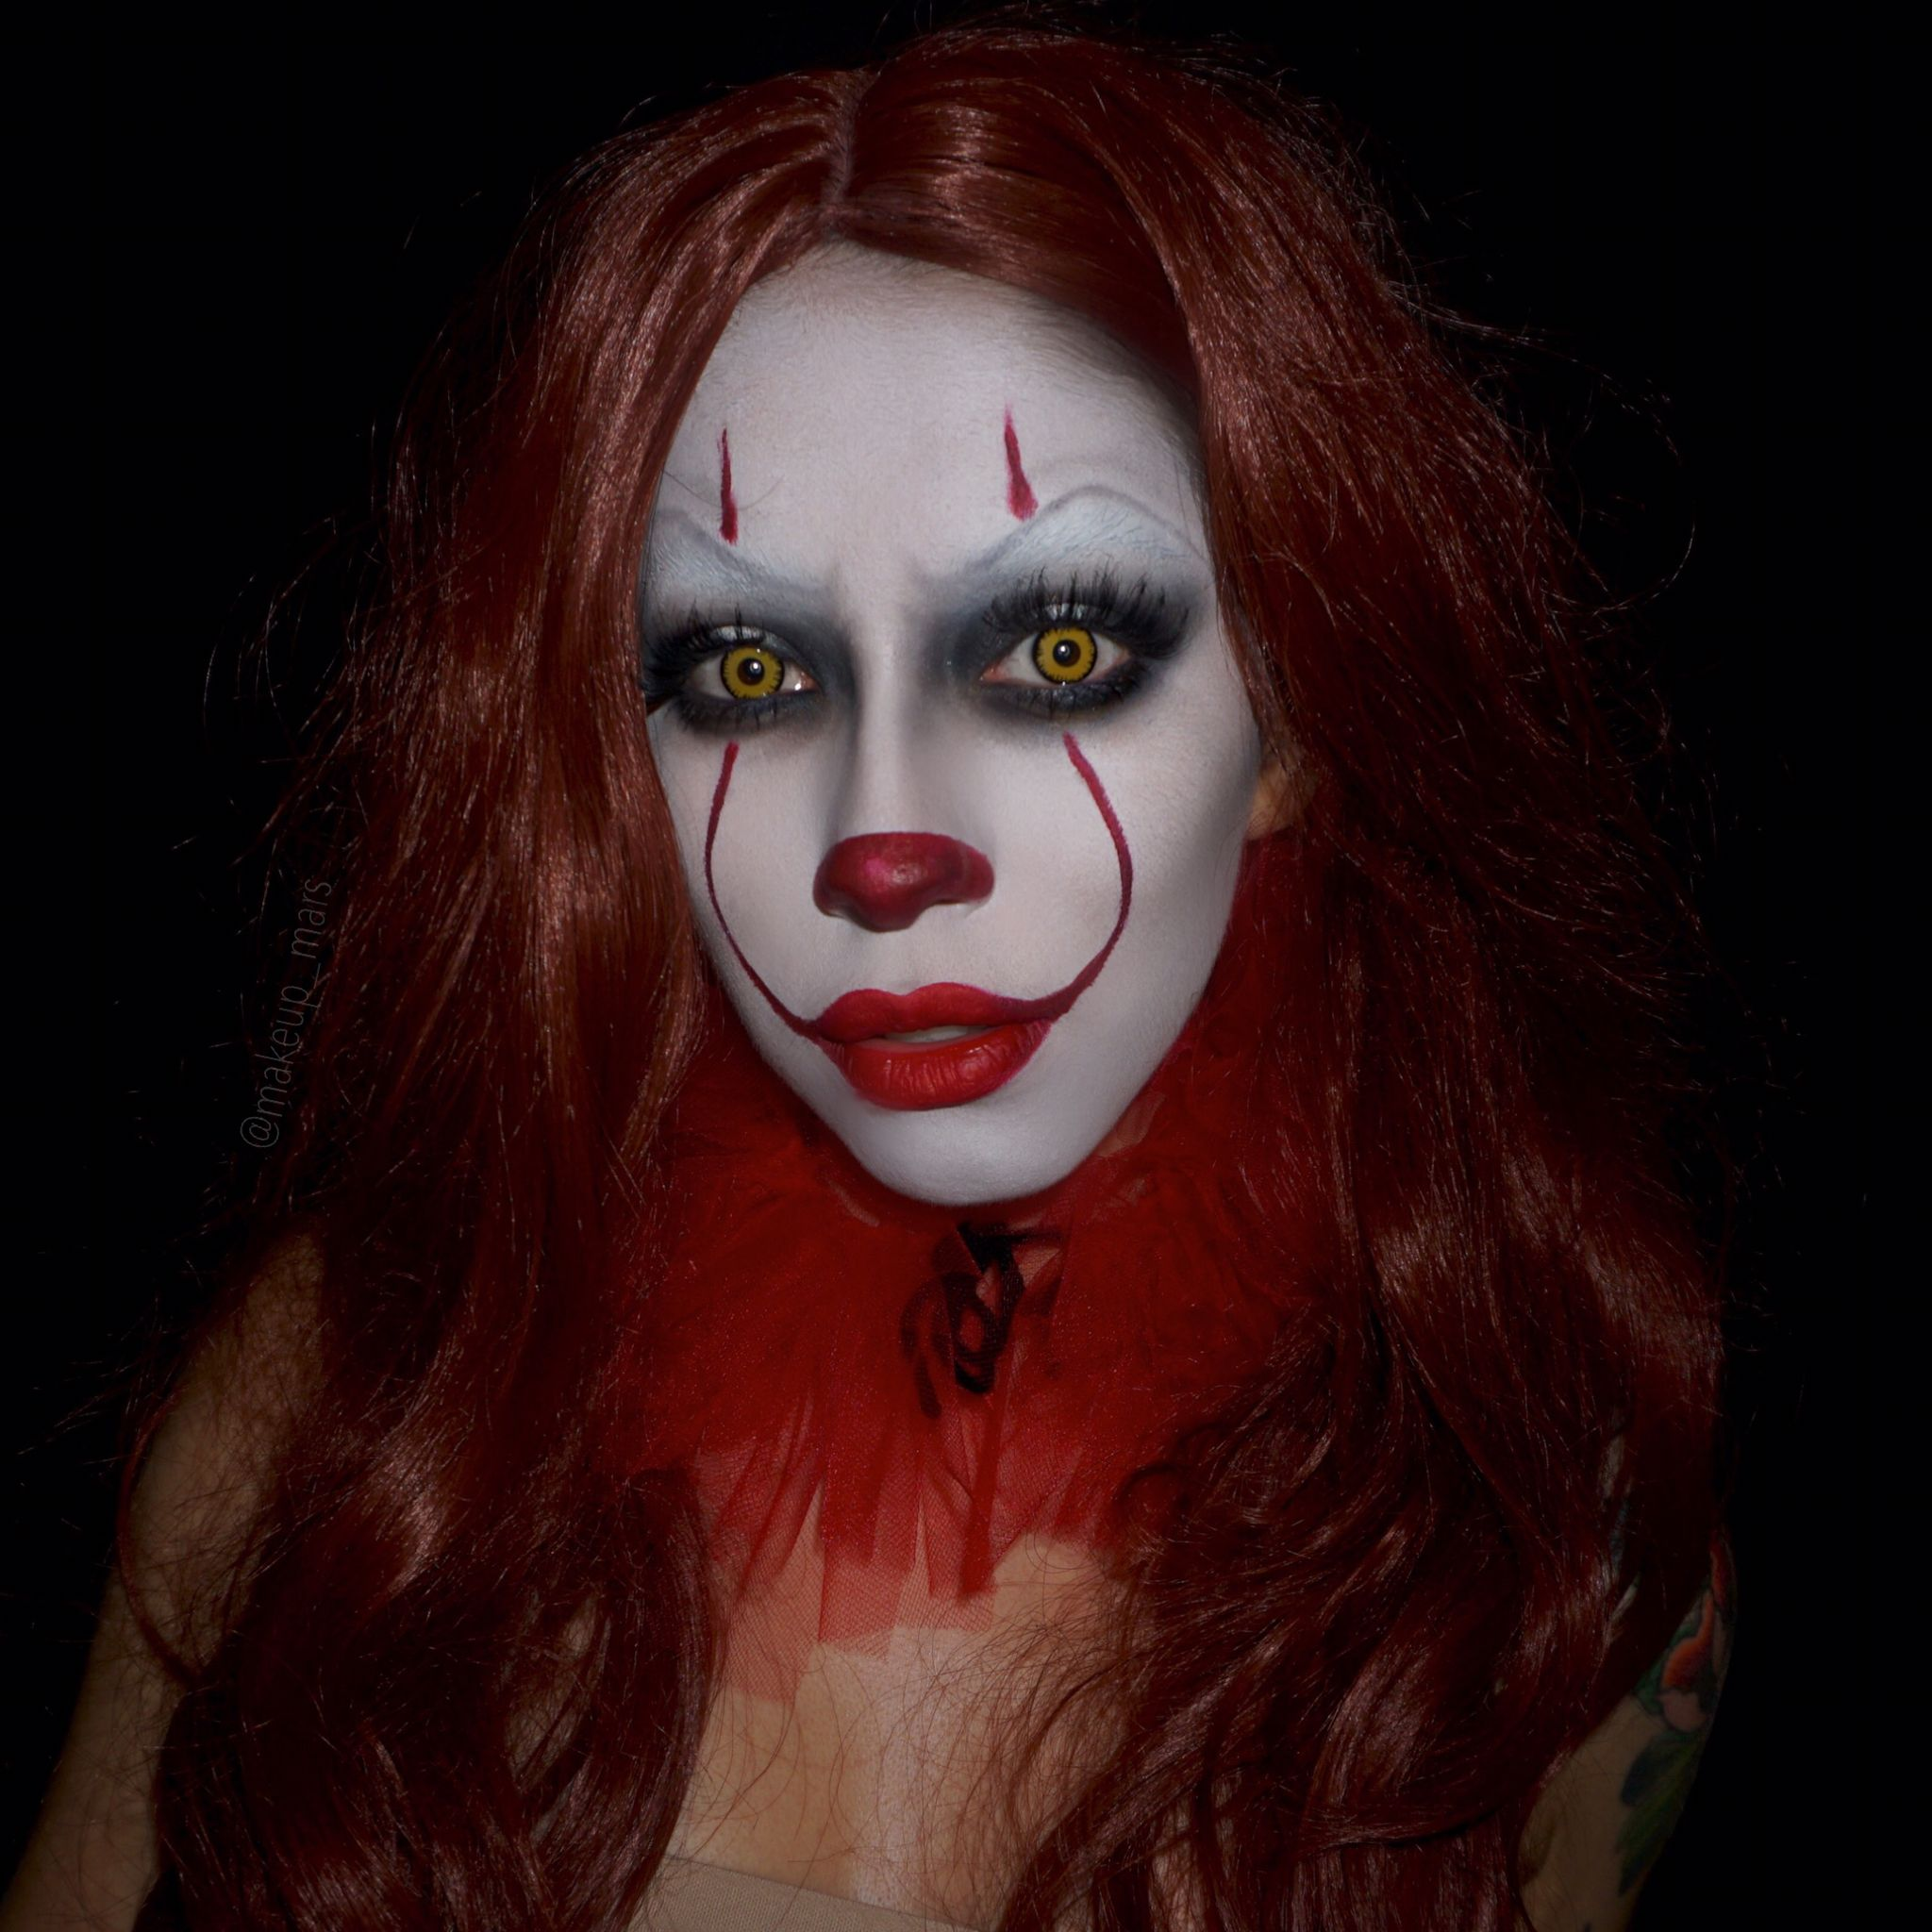 clown makeup pennywise the clown make up inspiration pinterest halloween kost m kost m. Black Bedroom Furniture Sets. Home Design Ideas